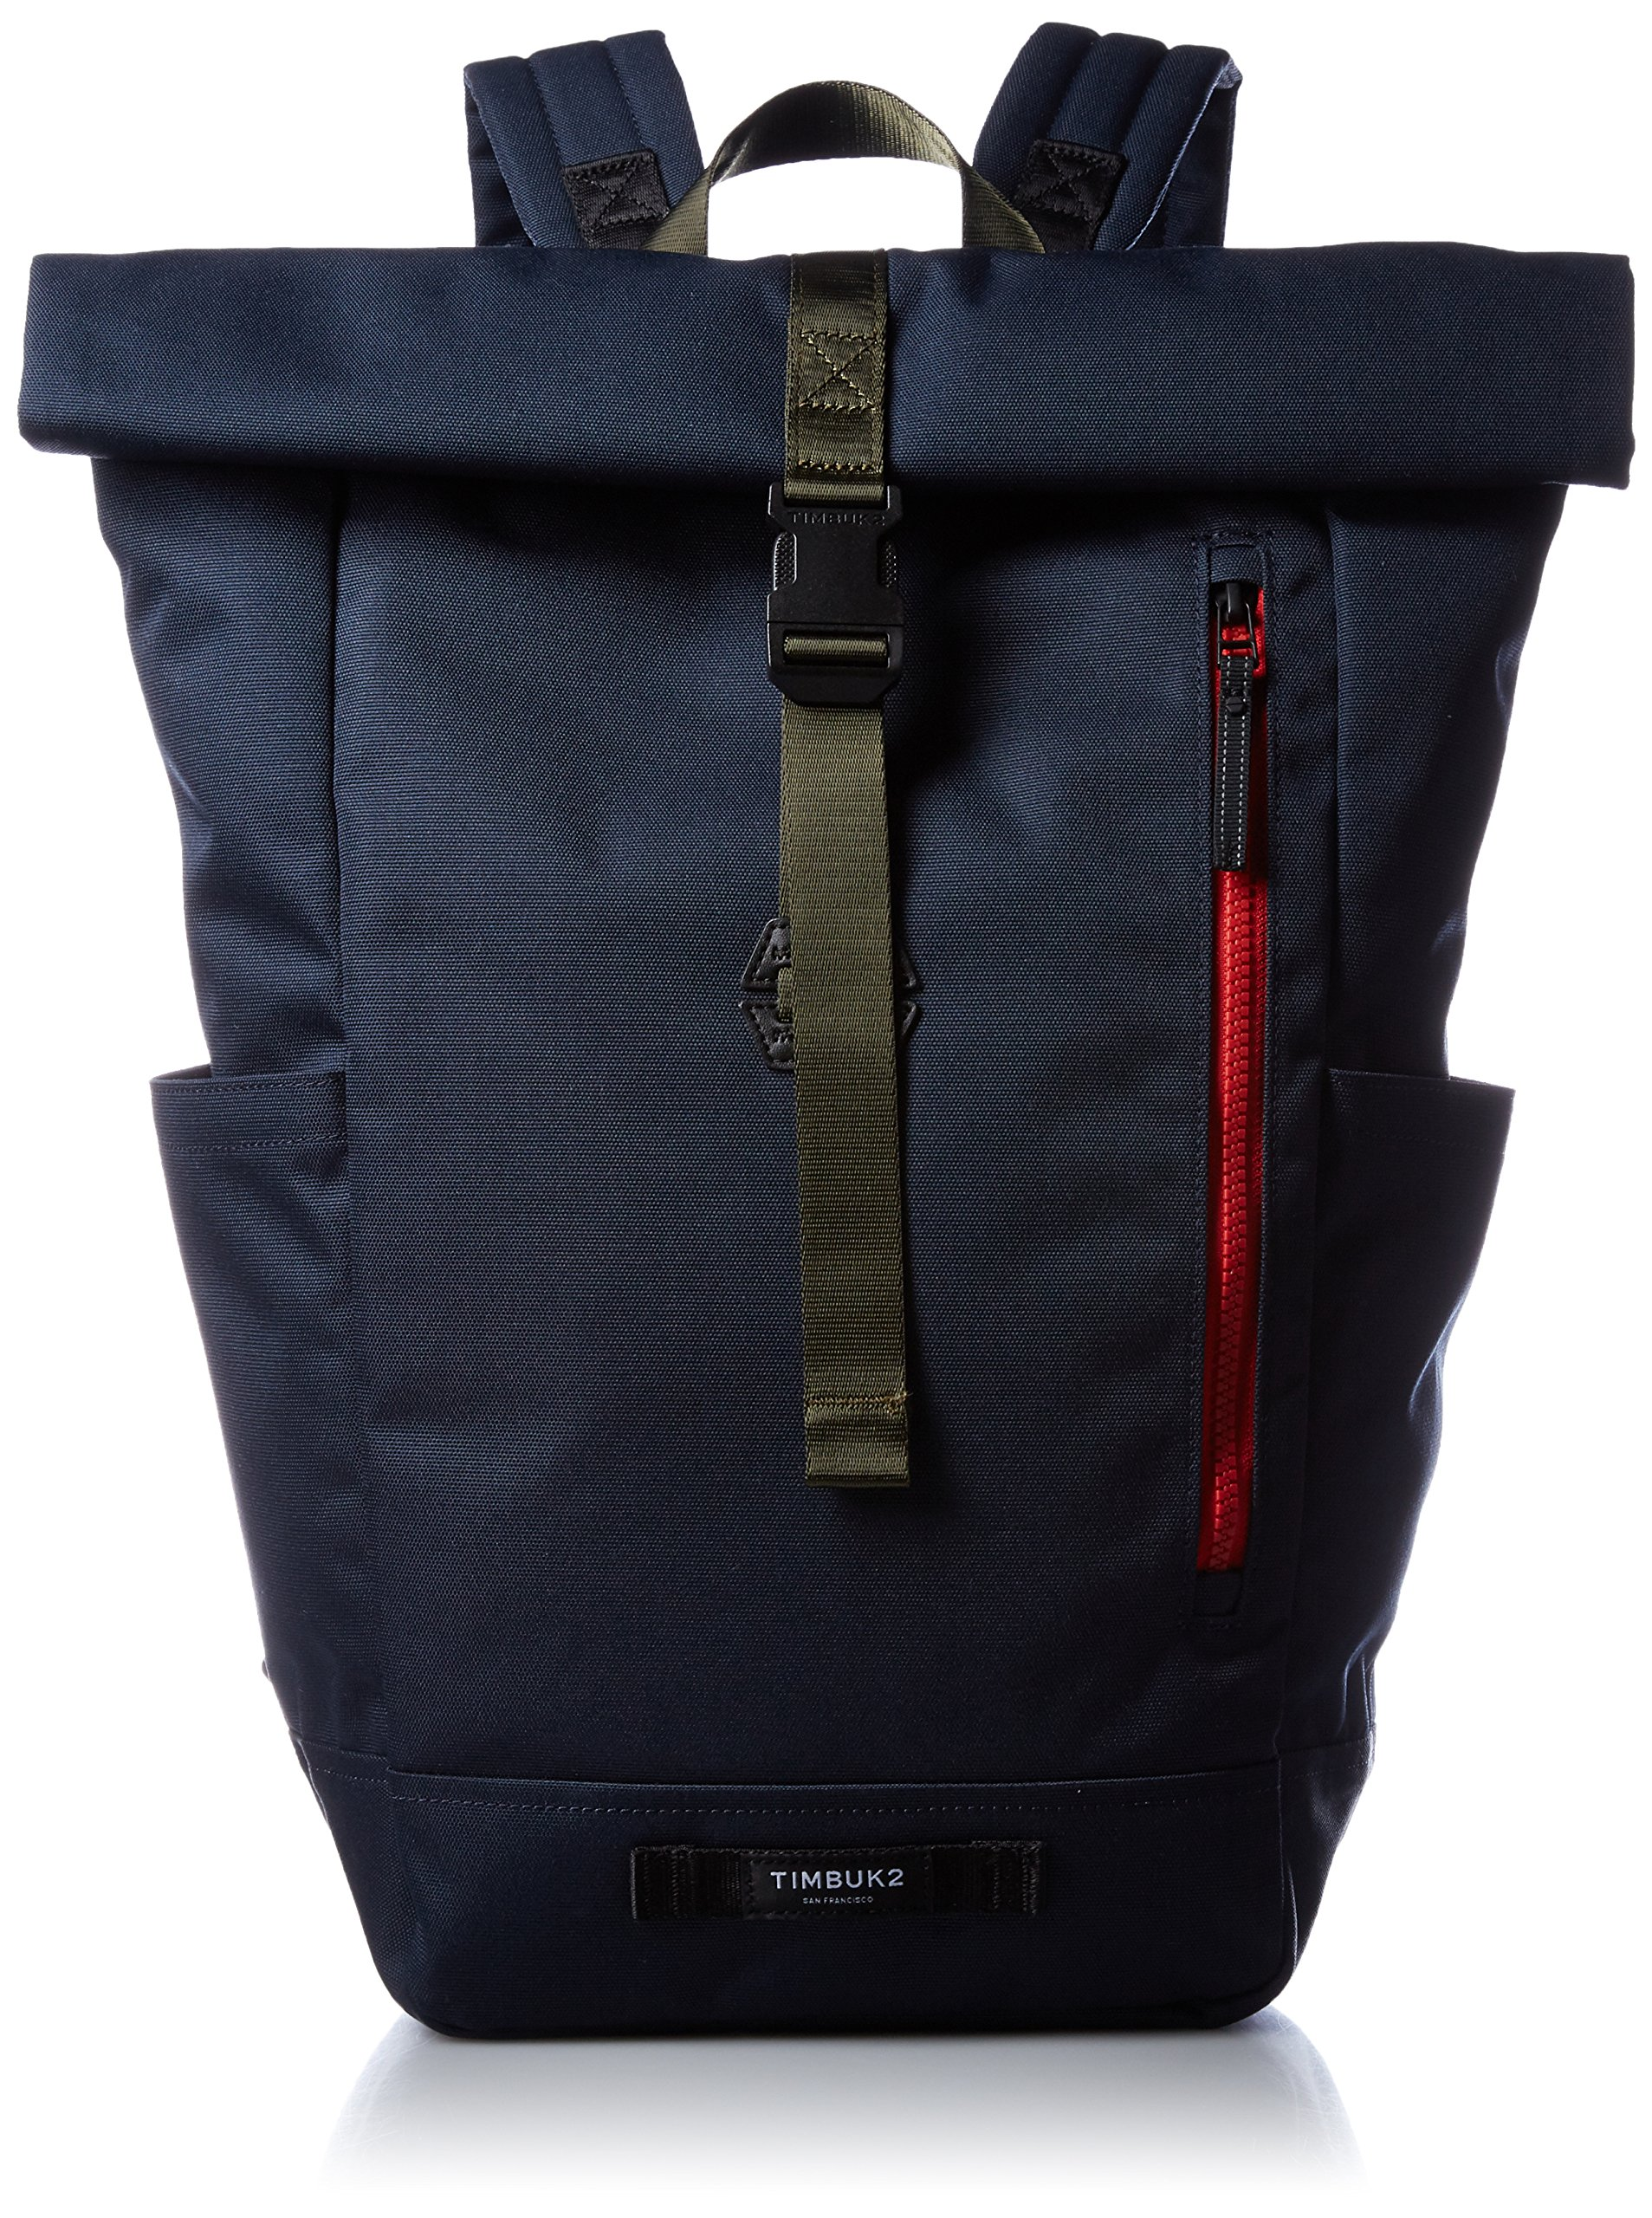 Timbuk2 Tuck Pack, Nautical/Bixi, One Size by Timbuk2 (Image #1)